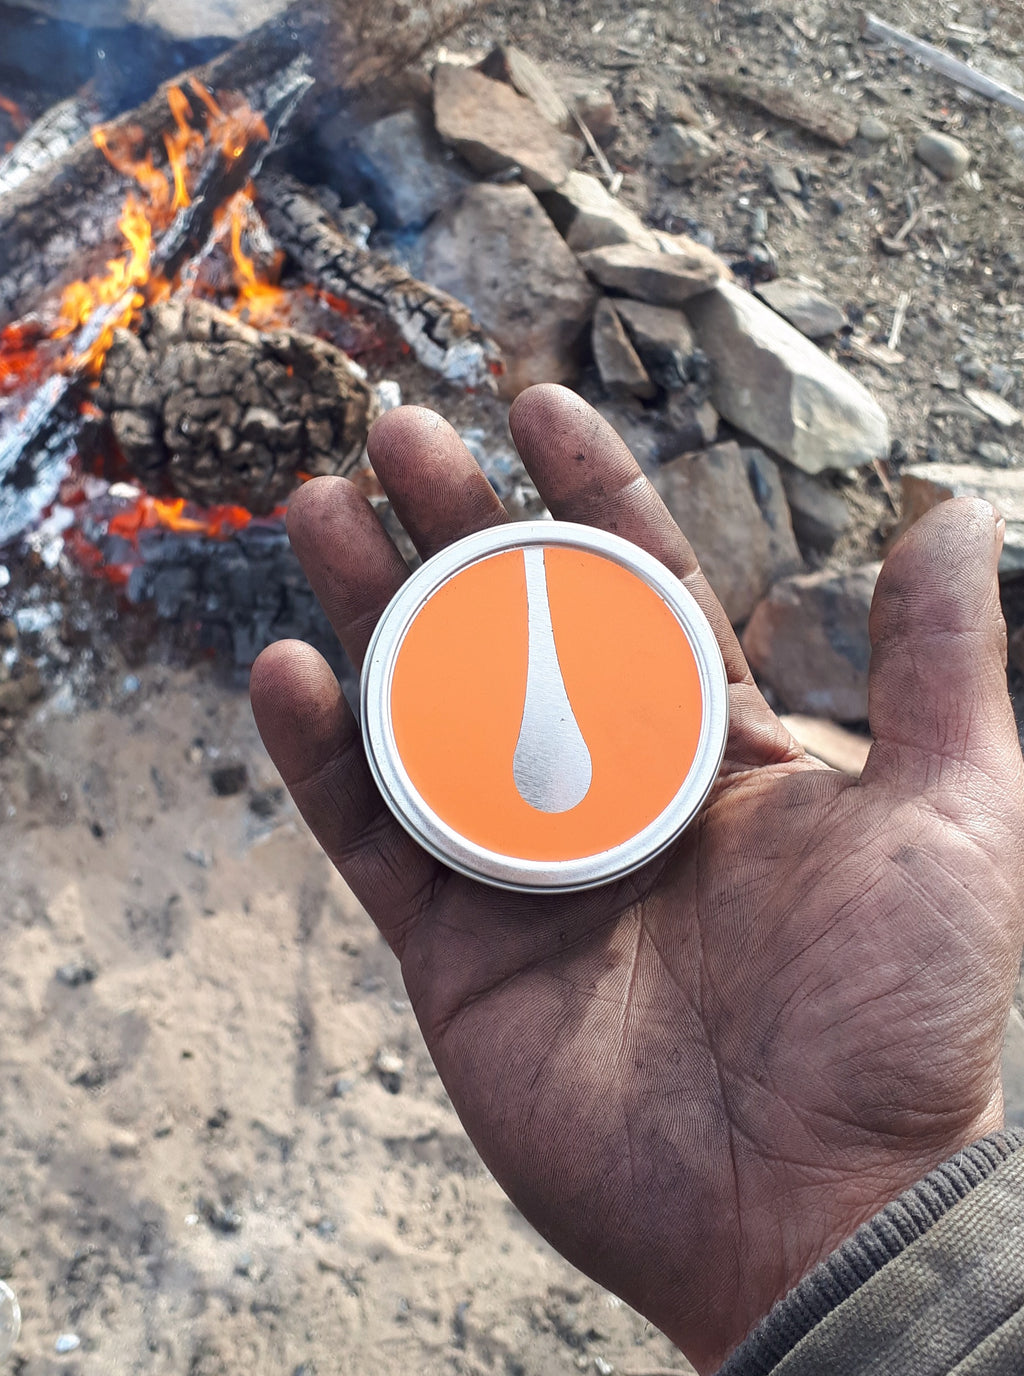 Pine Resin Infused Firestarter